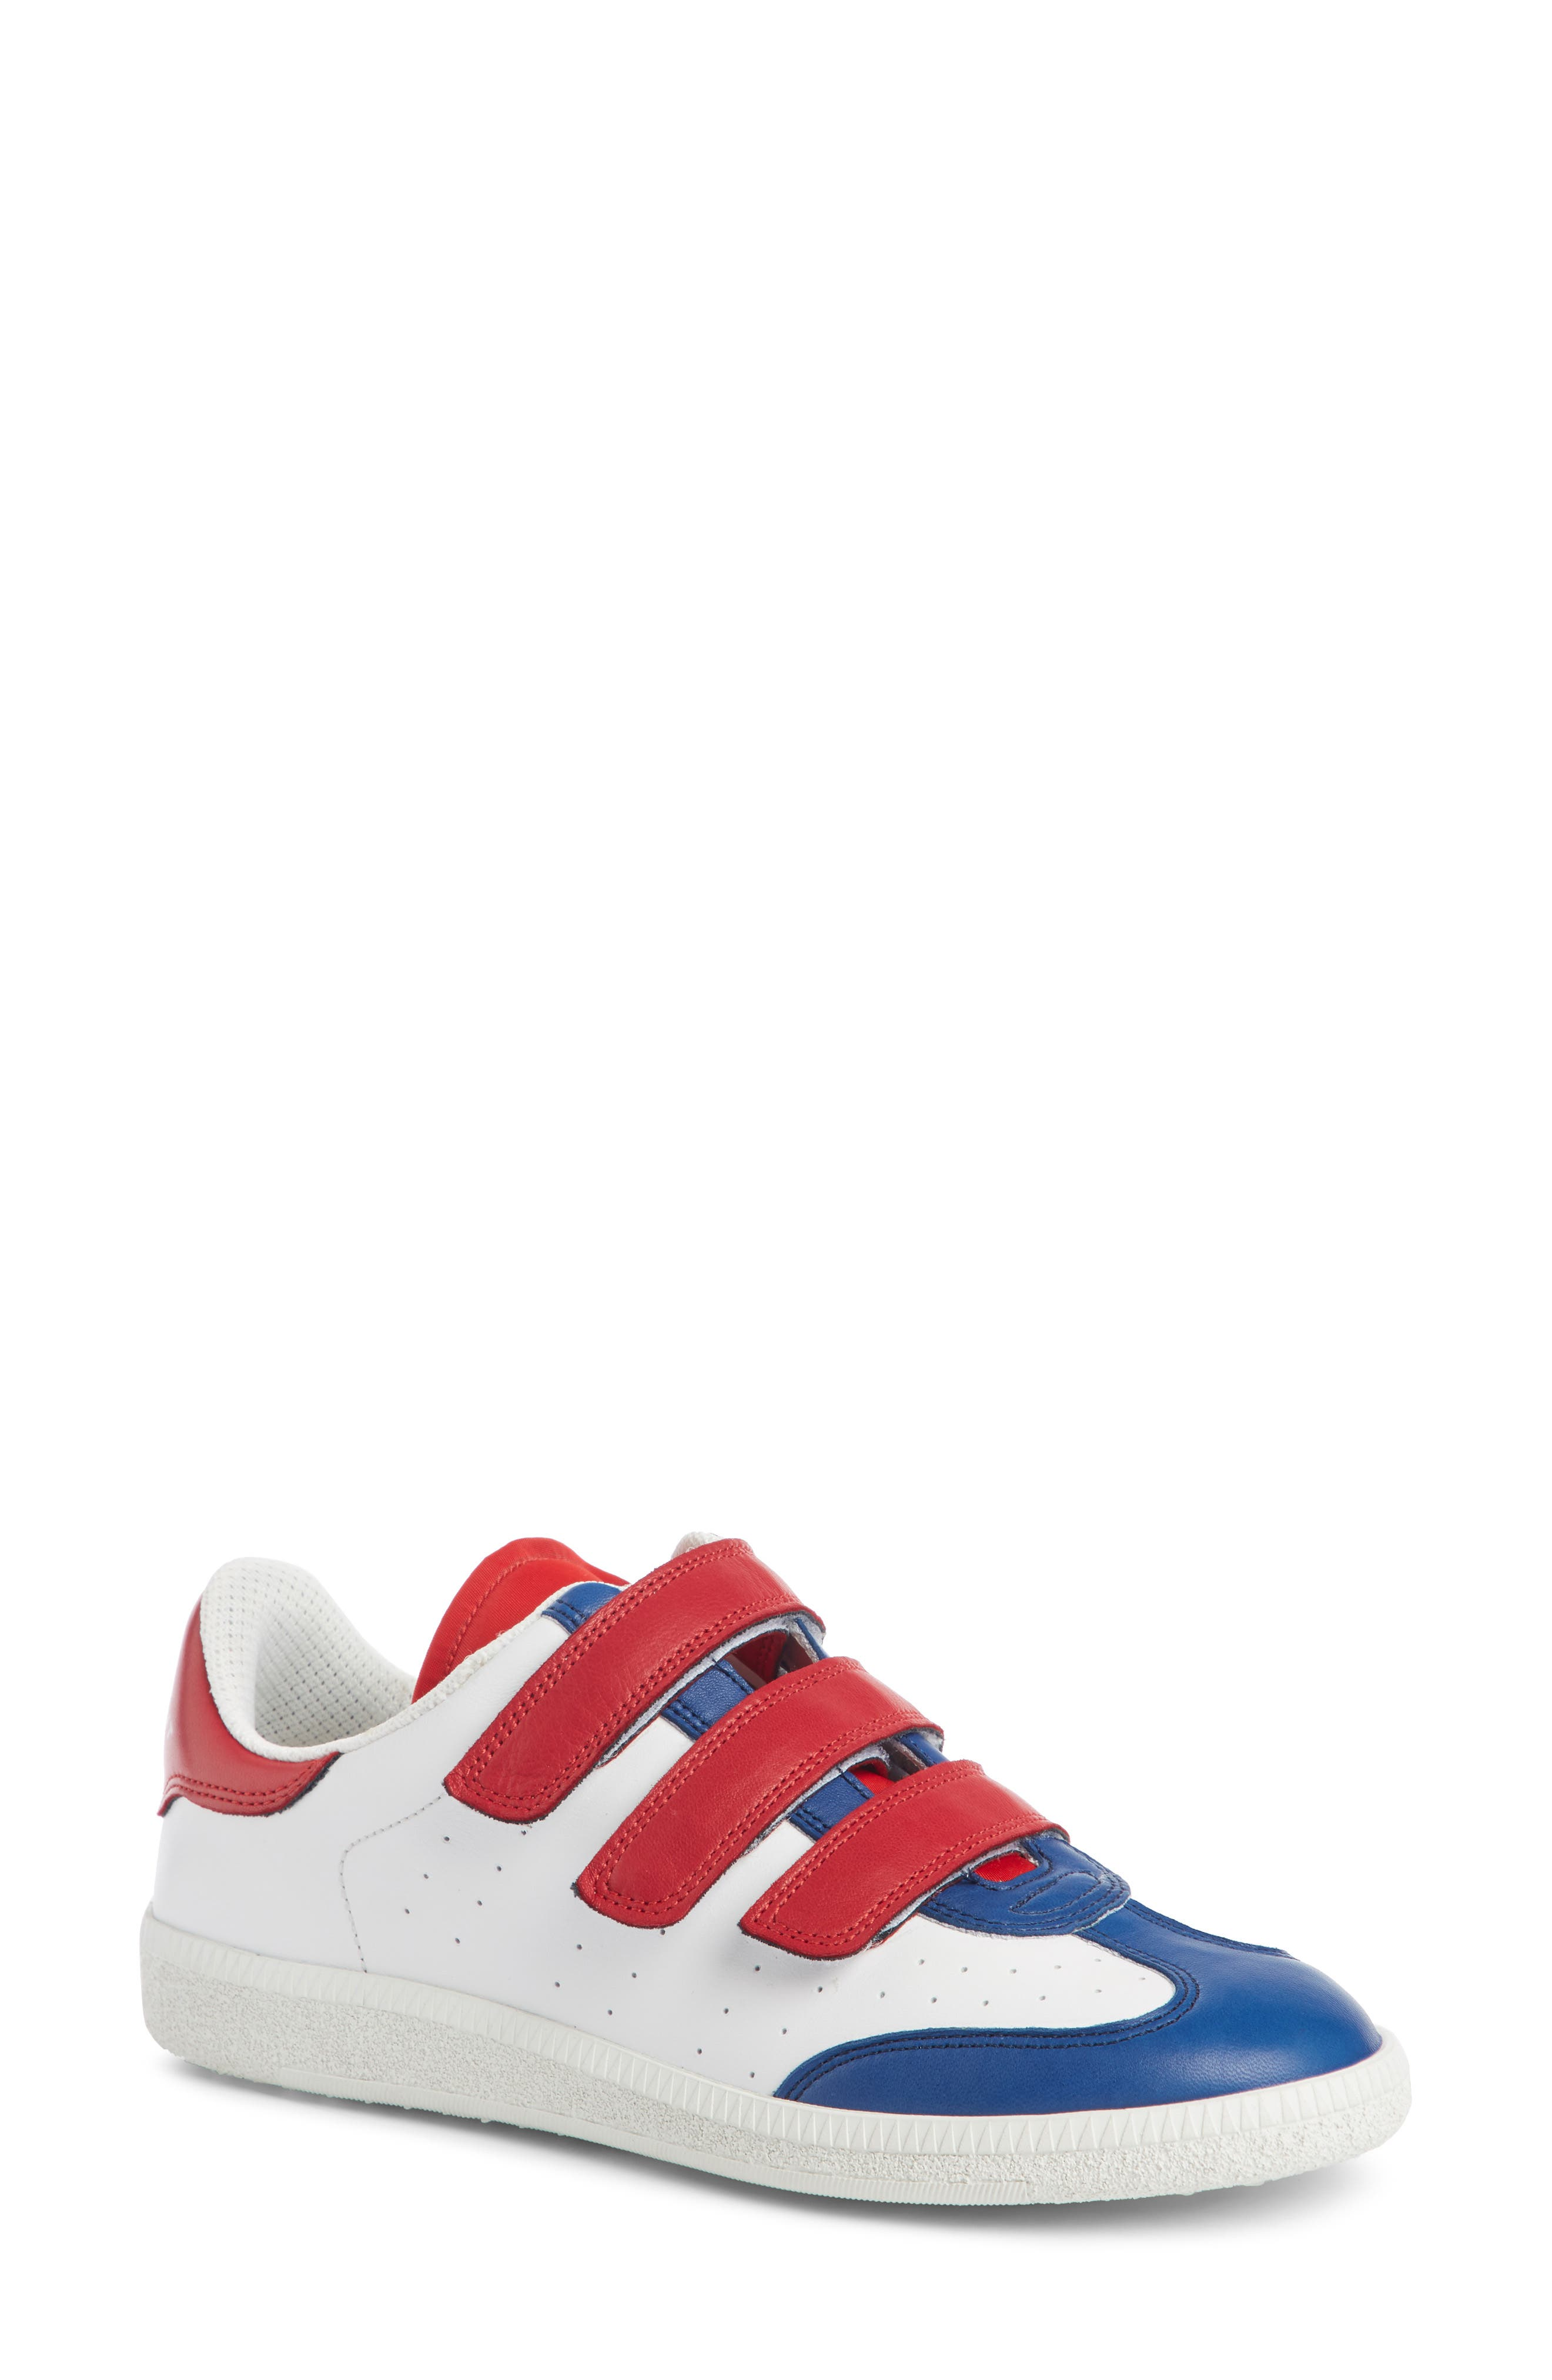 Beth Sneaker,                             Main thumbnail 1, color,                             White/ Blue/ Red